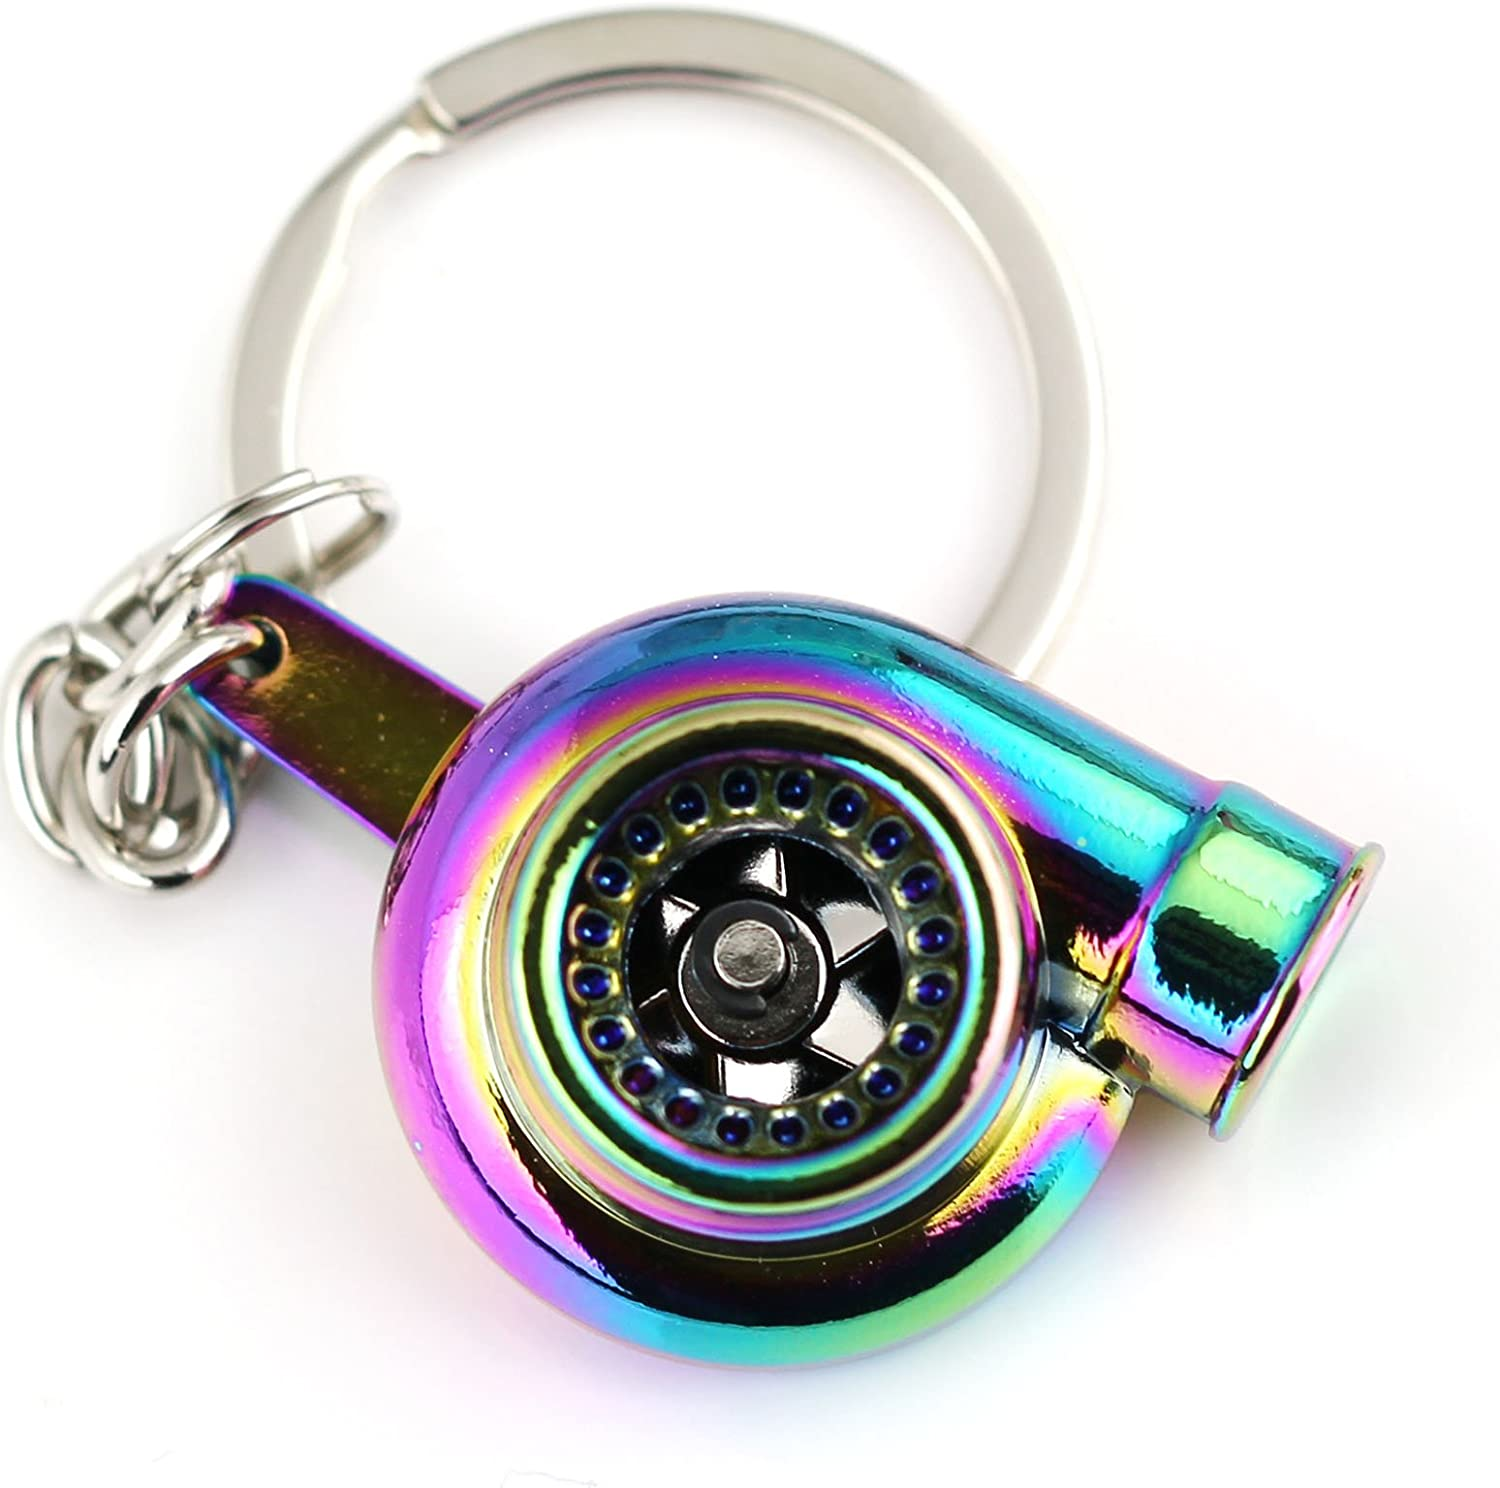 Maycom Creative Spinning New Charming Polished Black Turbo Turbocharger Keychain Key Chain Ring Keyring Keyfob,make Whistle Sound